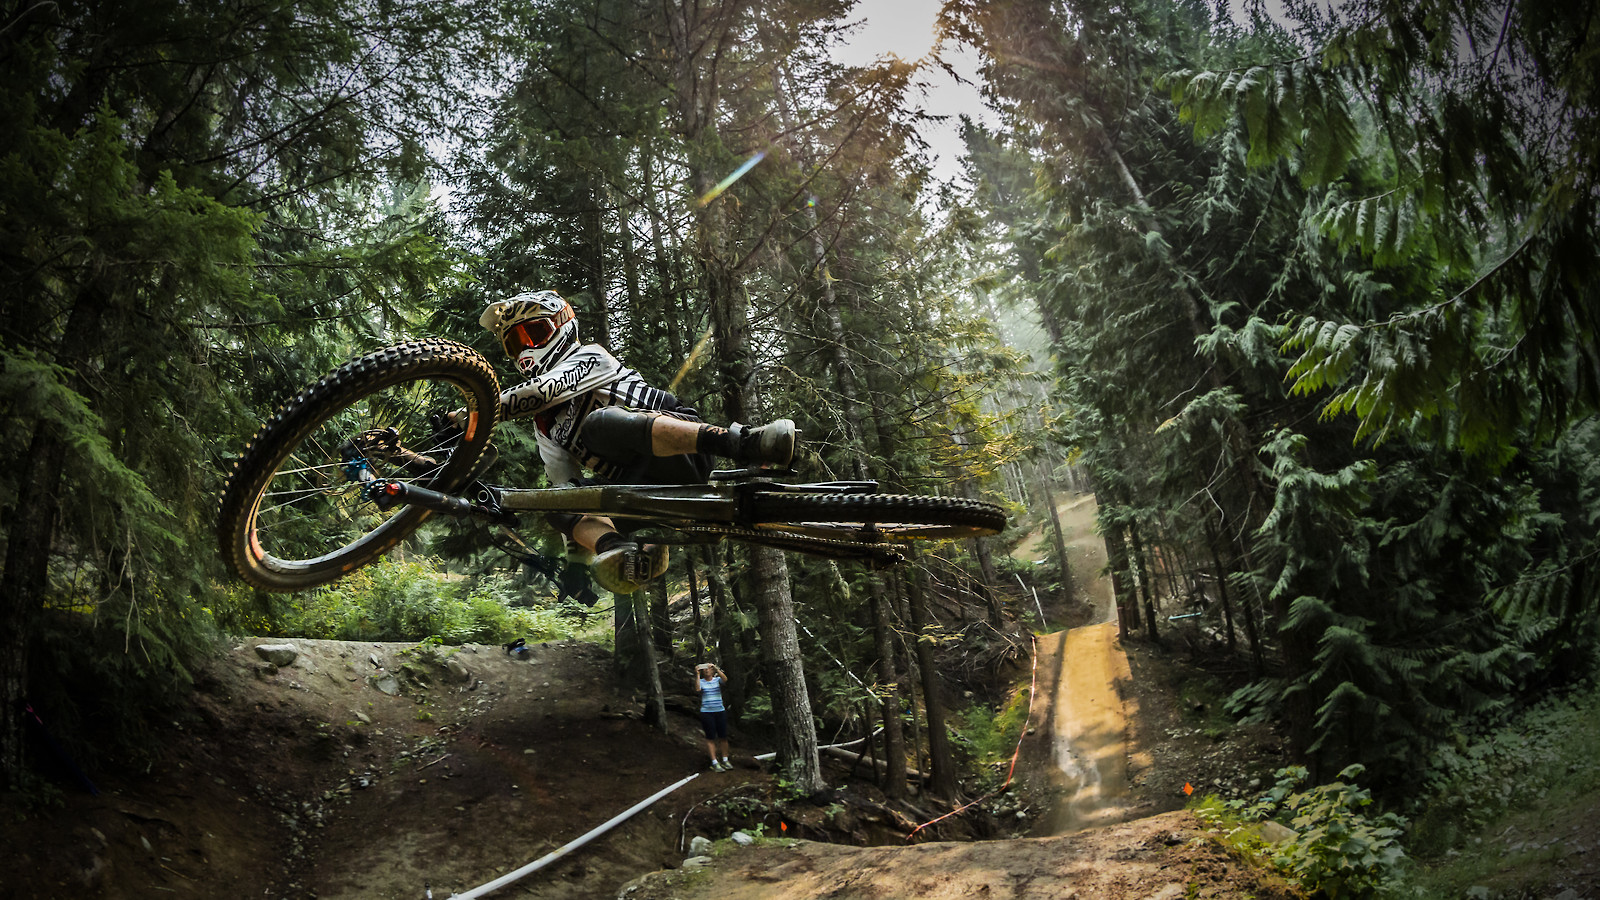 46086829444 d96c38c947 o - phunkt.com - Mountain Biking Pictures - Vital MTB